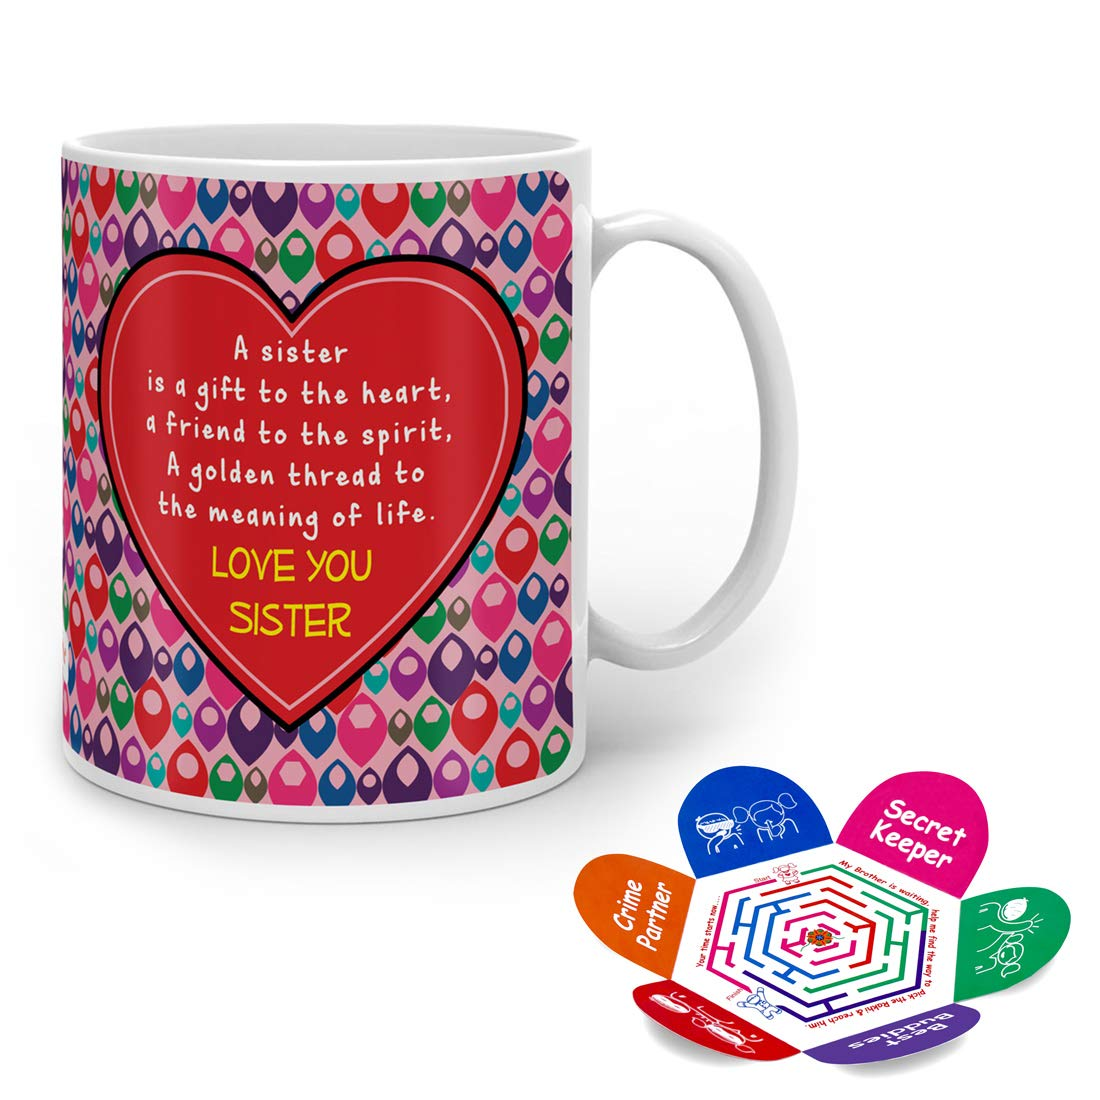 Indigifts Rakshabandhan Gifts for Sister Sis a gift to heart & a golden  thread to meaning of life Quote Pink Coffee Mug 20 ml   Gifts for Sister,  ...